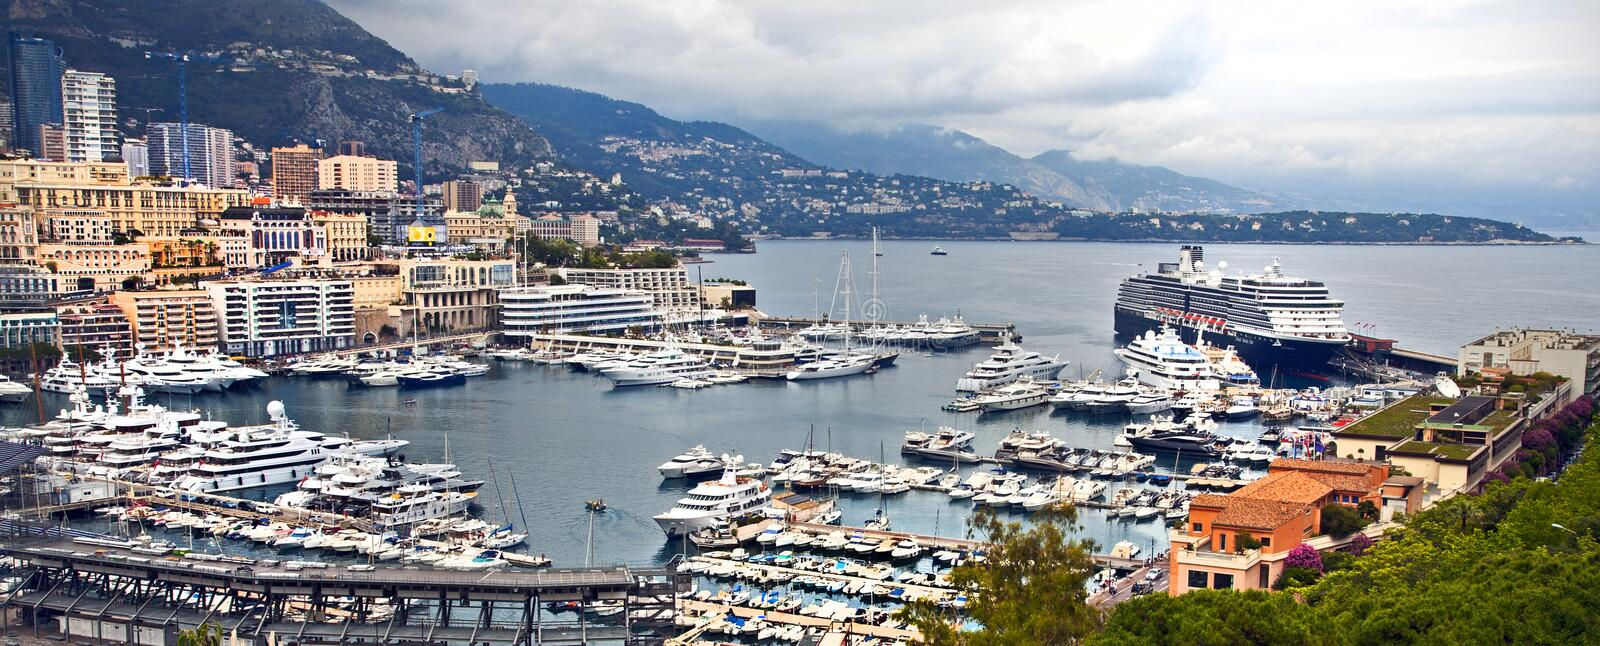 Marina and luxury at monte carlo royalty free stock photography